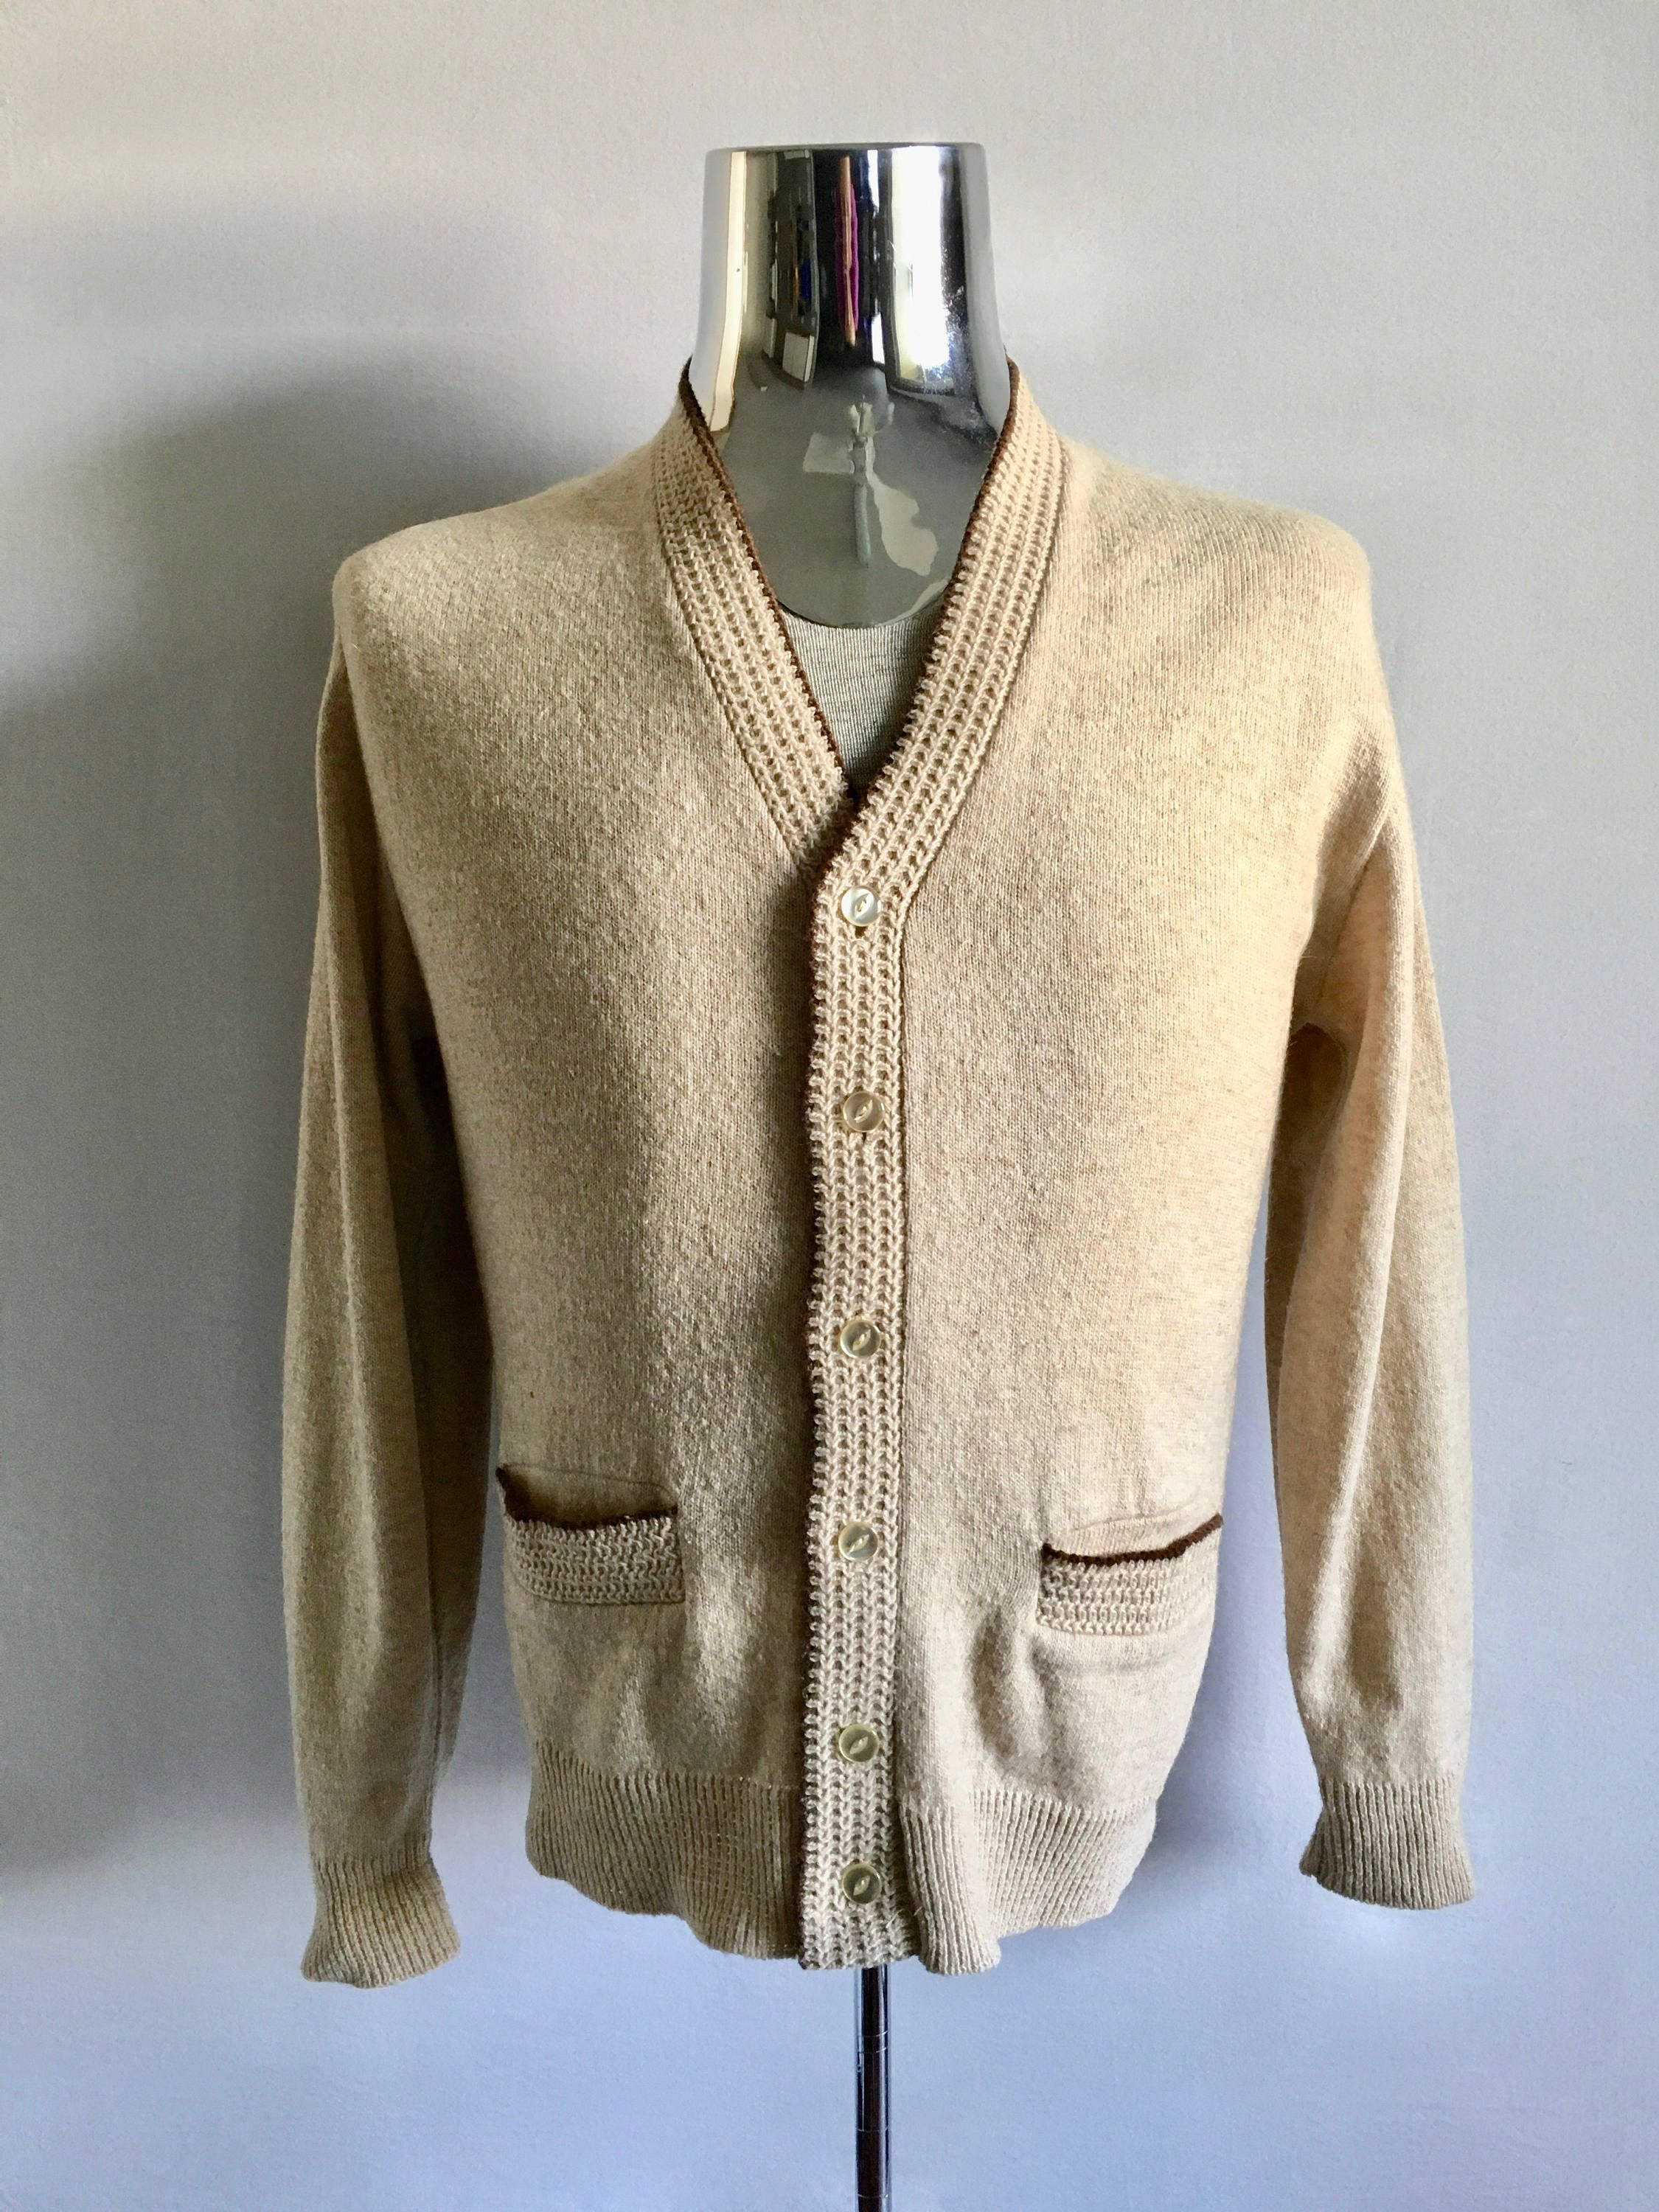 Vintage Men's 60's Wool Blend, Cardigan Sweater, Cream, Long ...